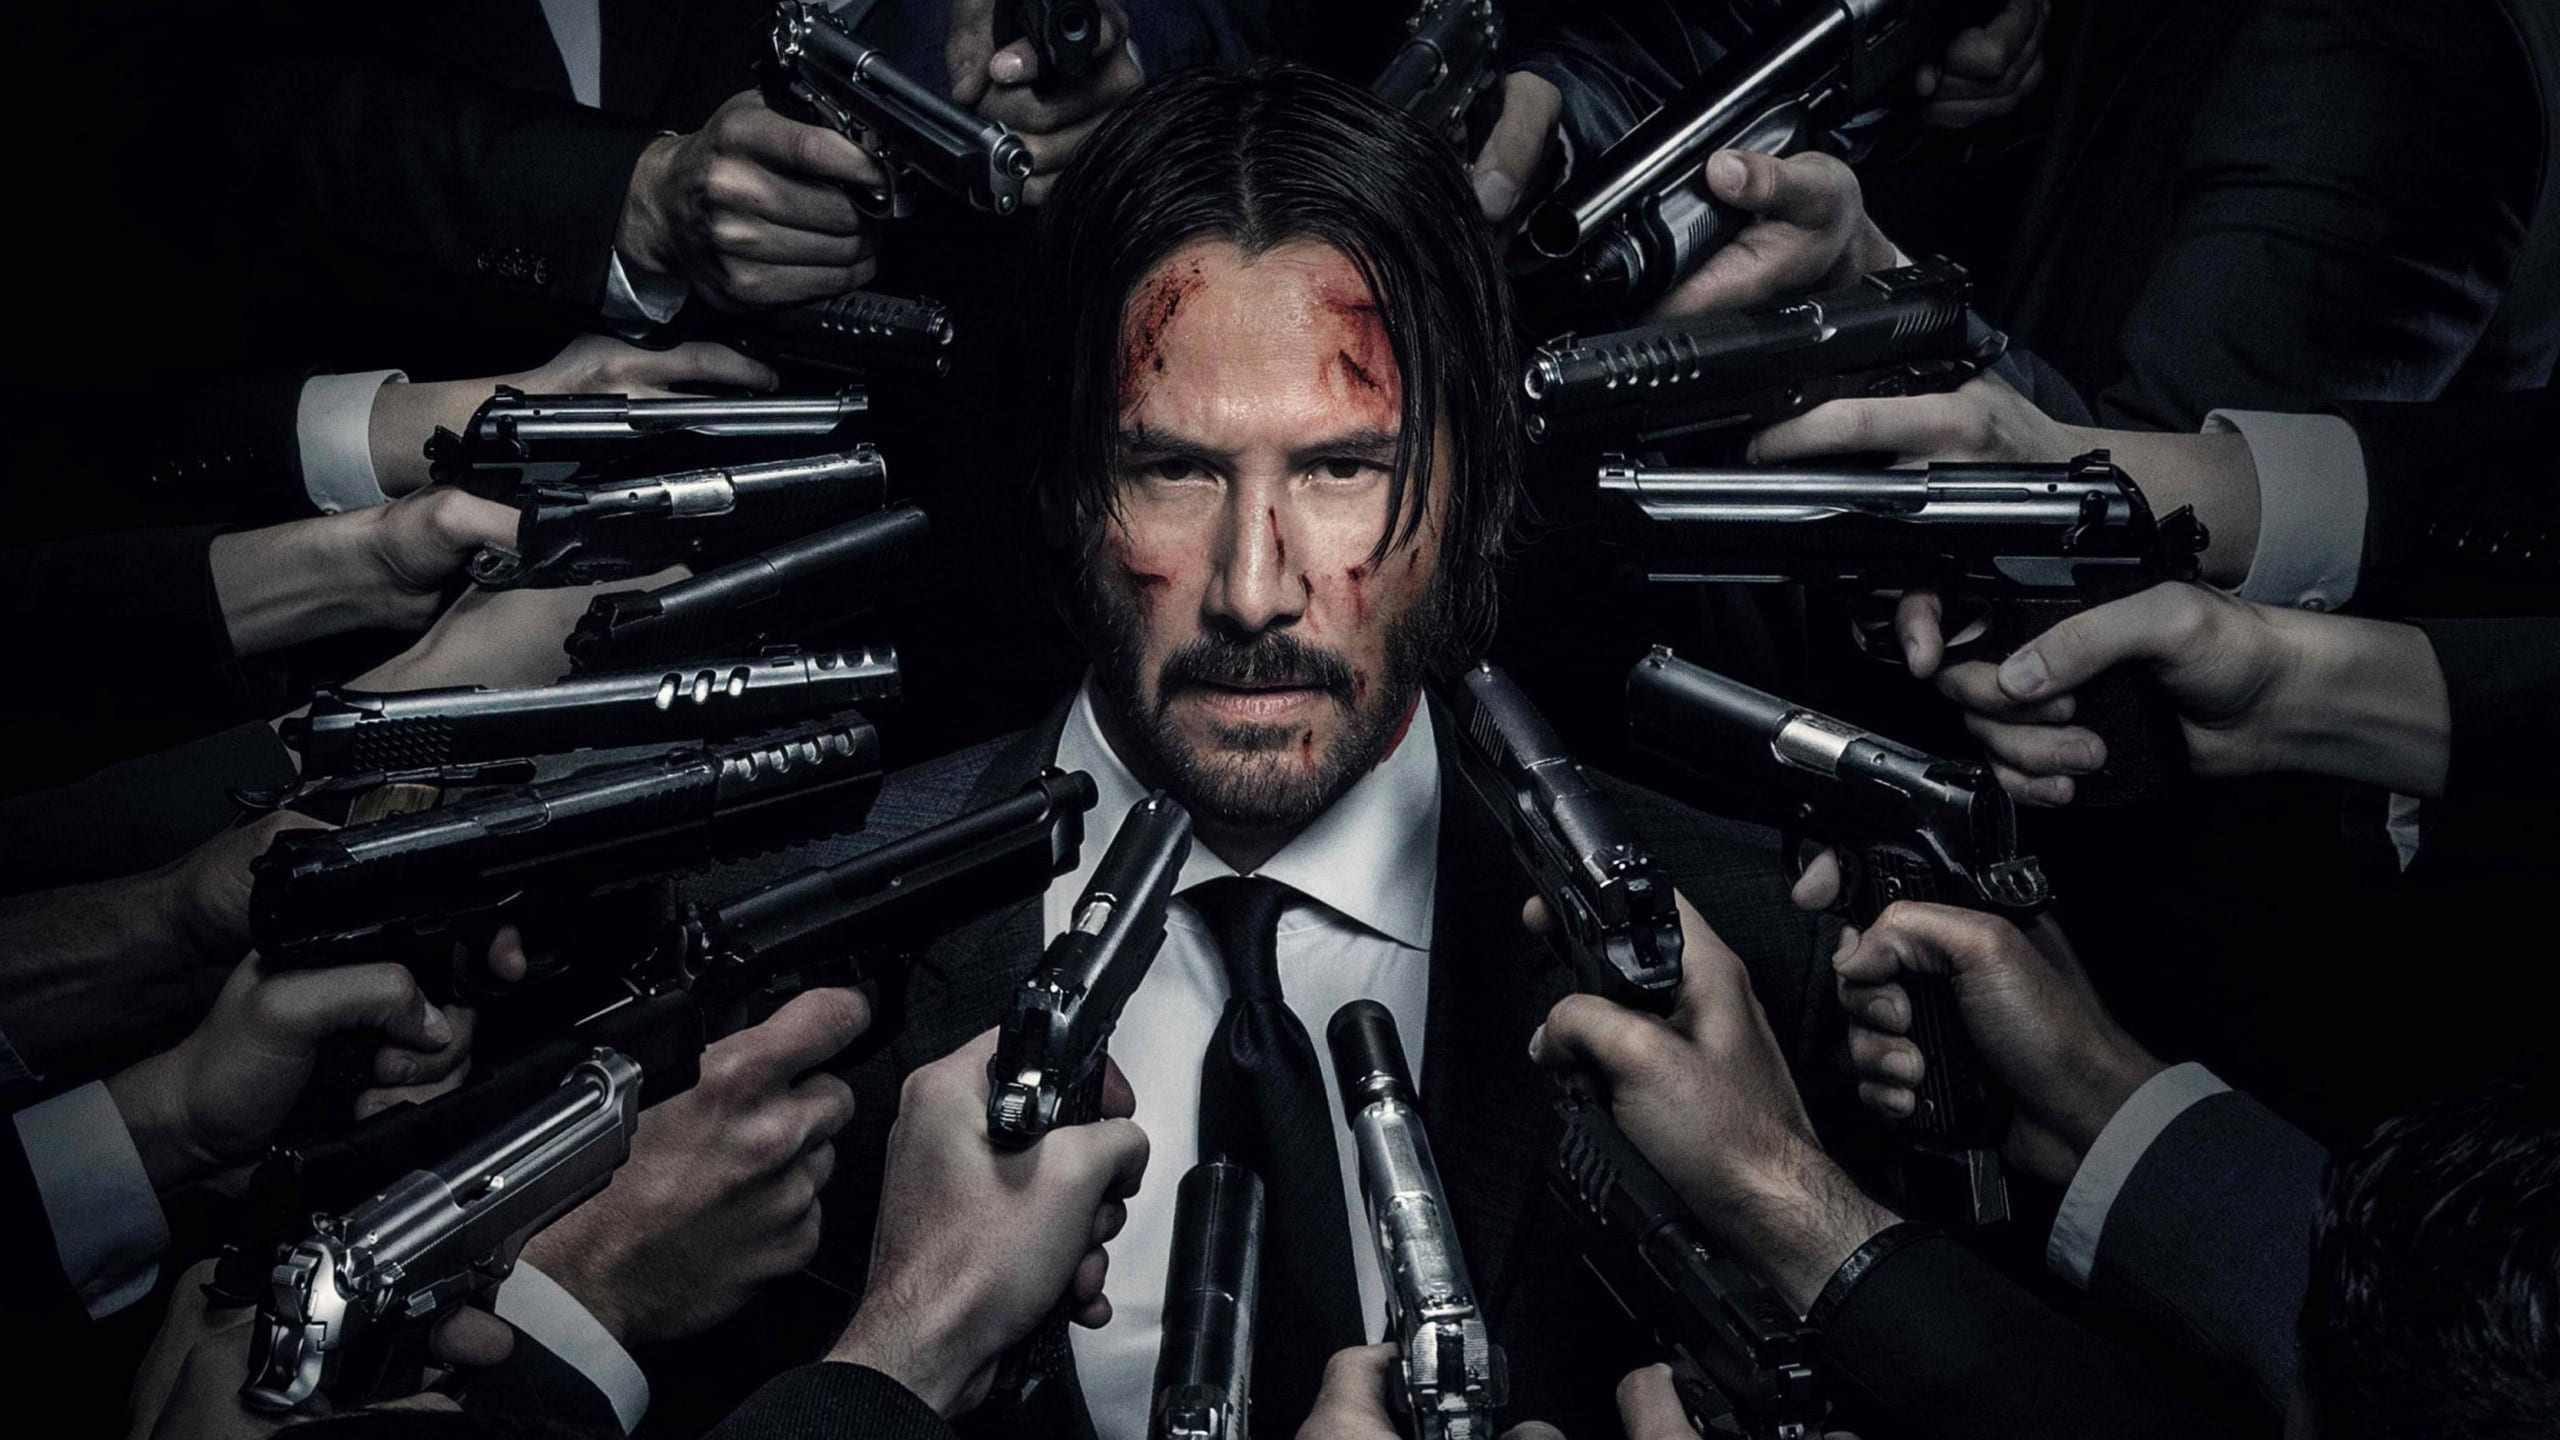 John Wick Serves Up Bo S Deeper Mythos With A Bullet Fan Fest For Fans By Fans